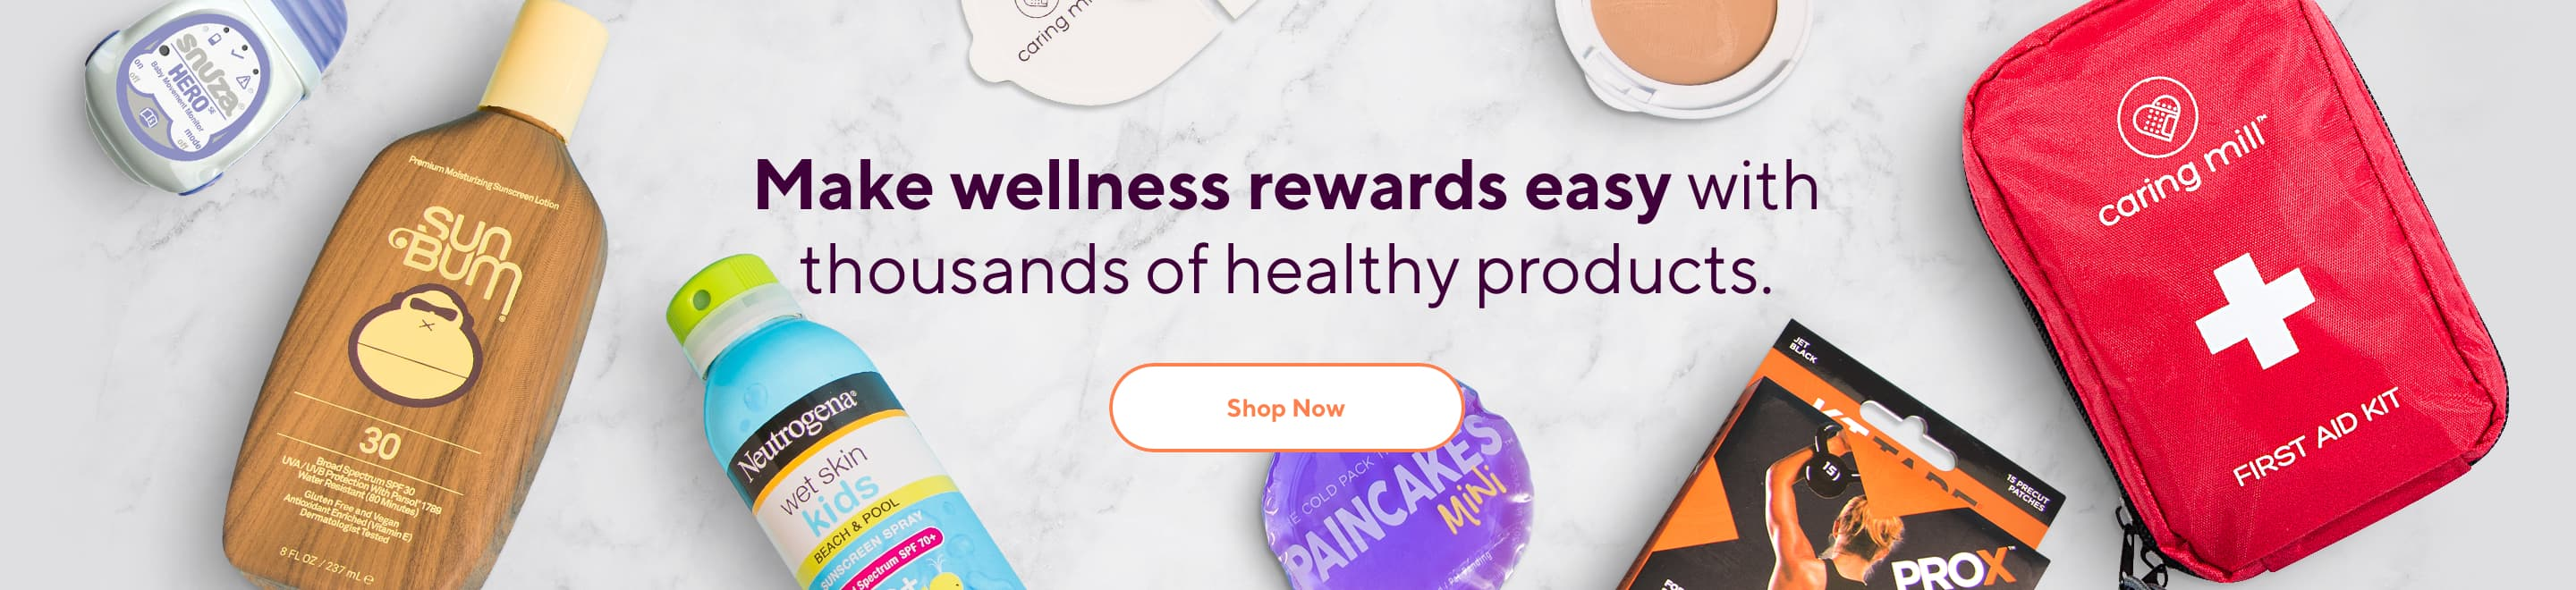 Make wellness rewards easy with thousands of healthy products.